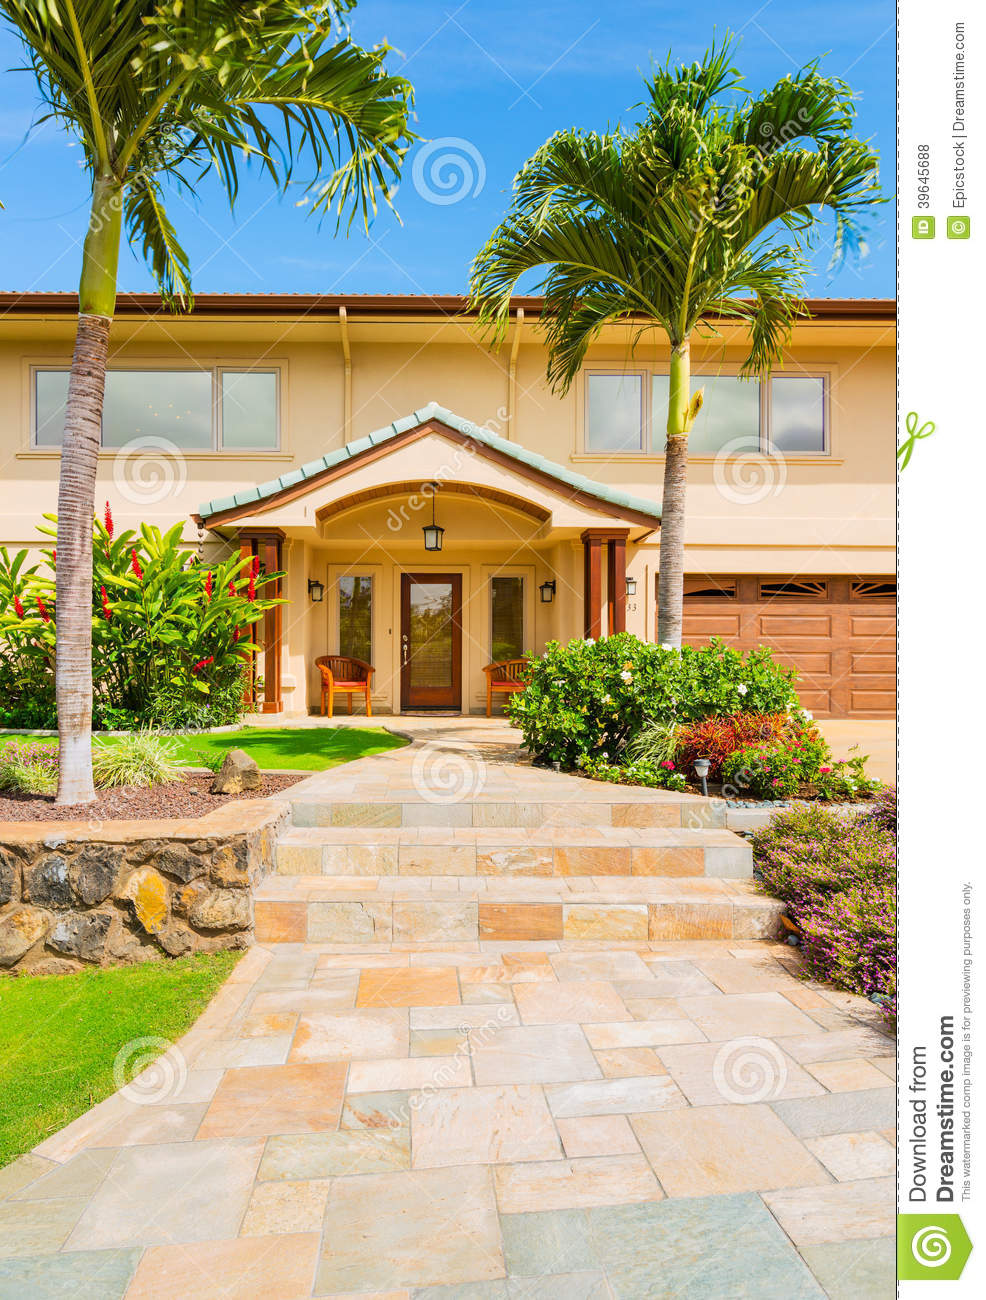 Beautiful Exterior Home Design Trends: Beautiful Home Exterior Stock Photo. Image Of Landscape